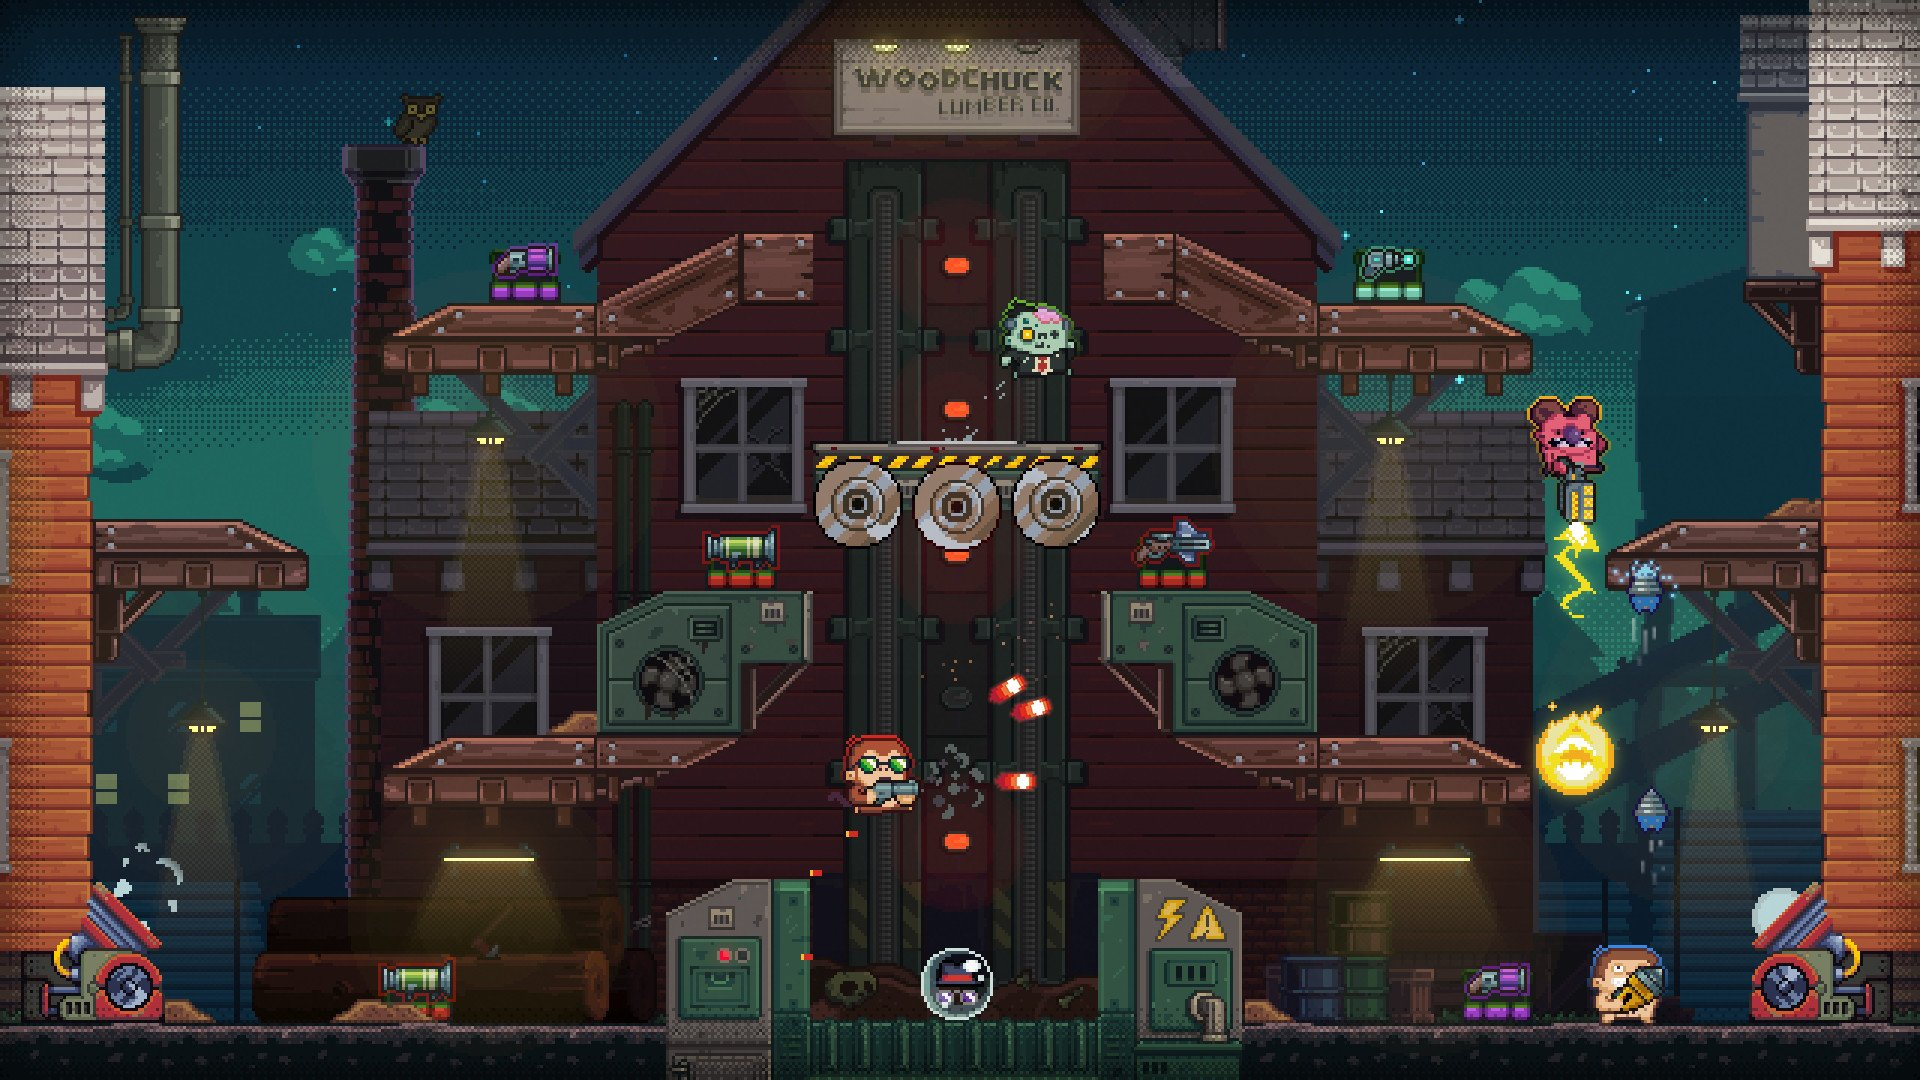 Guntastic Is A Gun Filled Arena Brawler Headed To Xbox One And Steam As Of December 4th